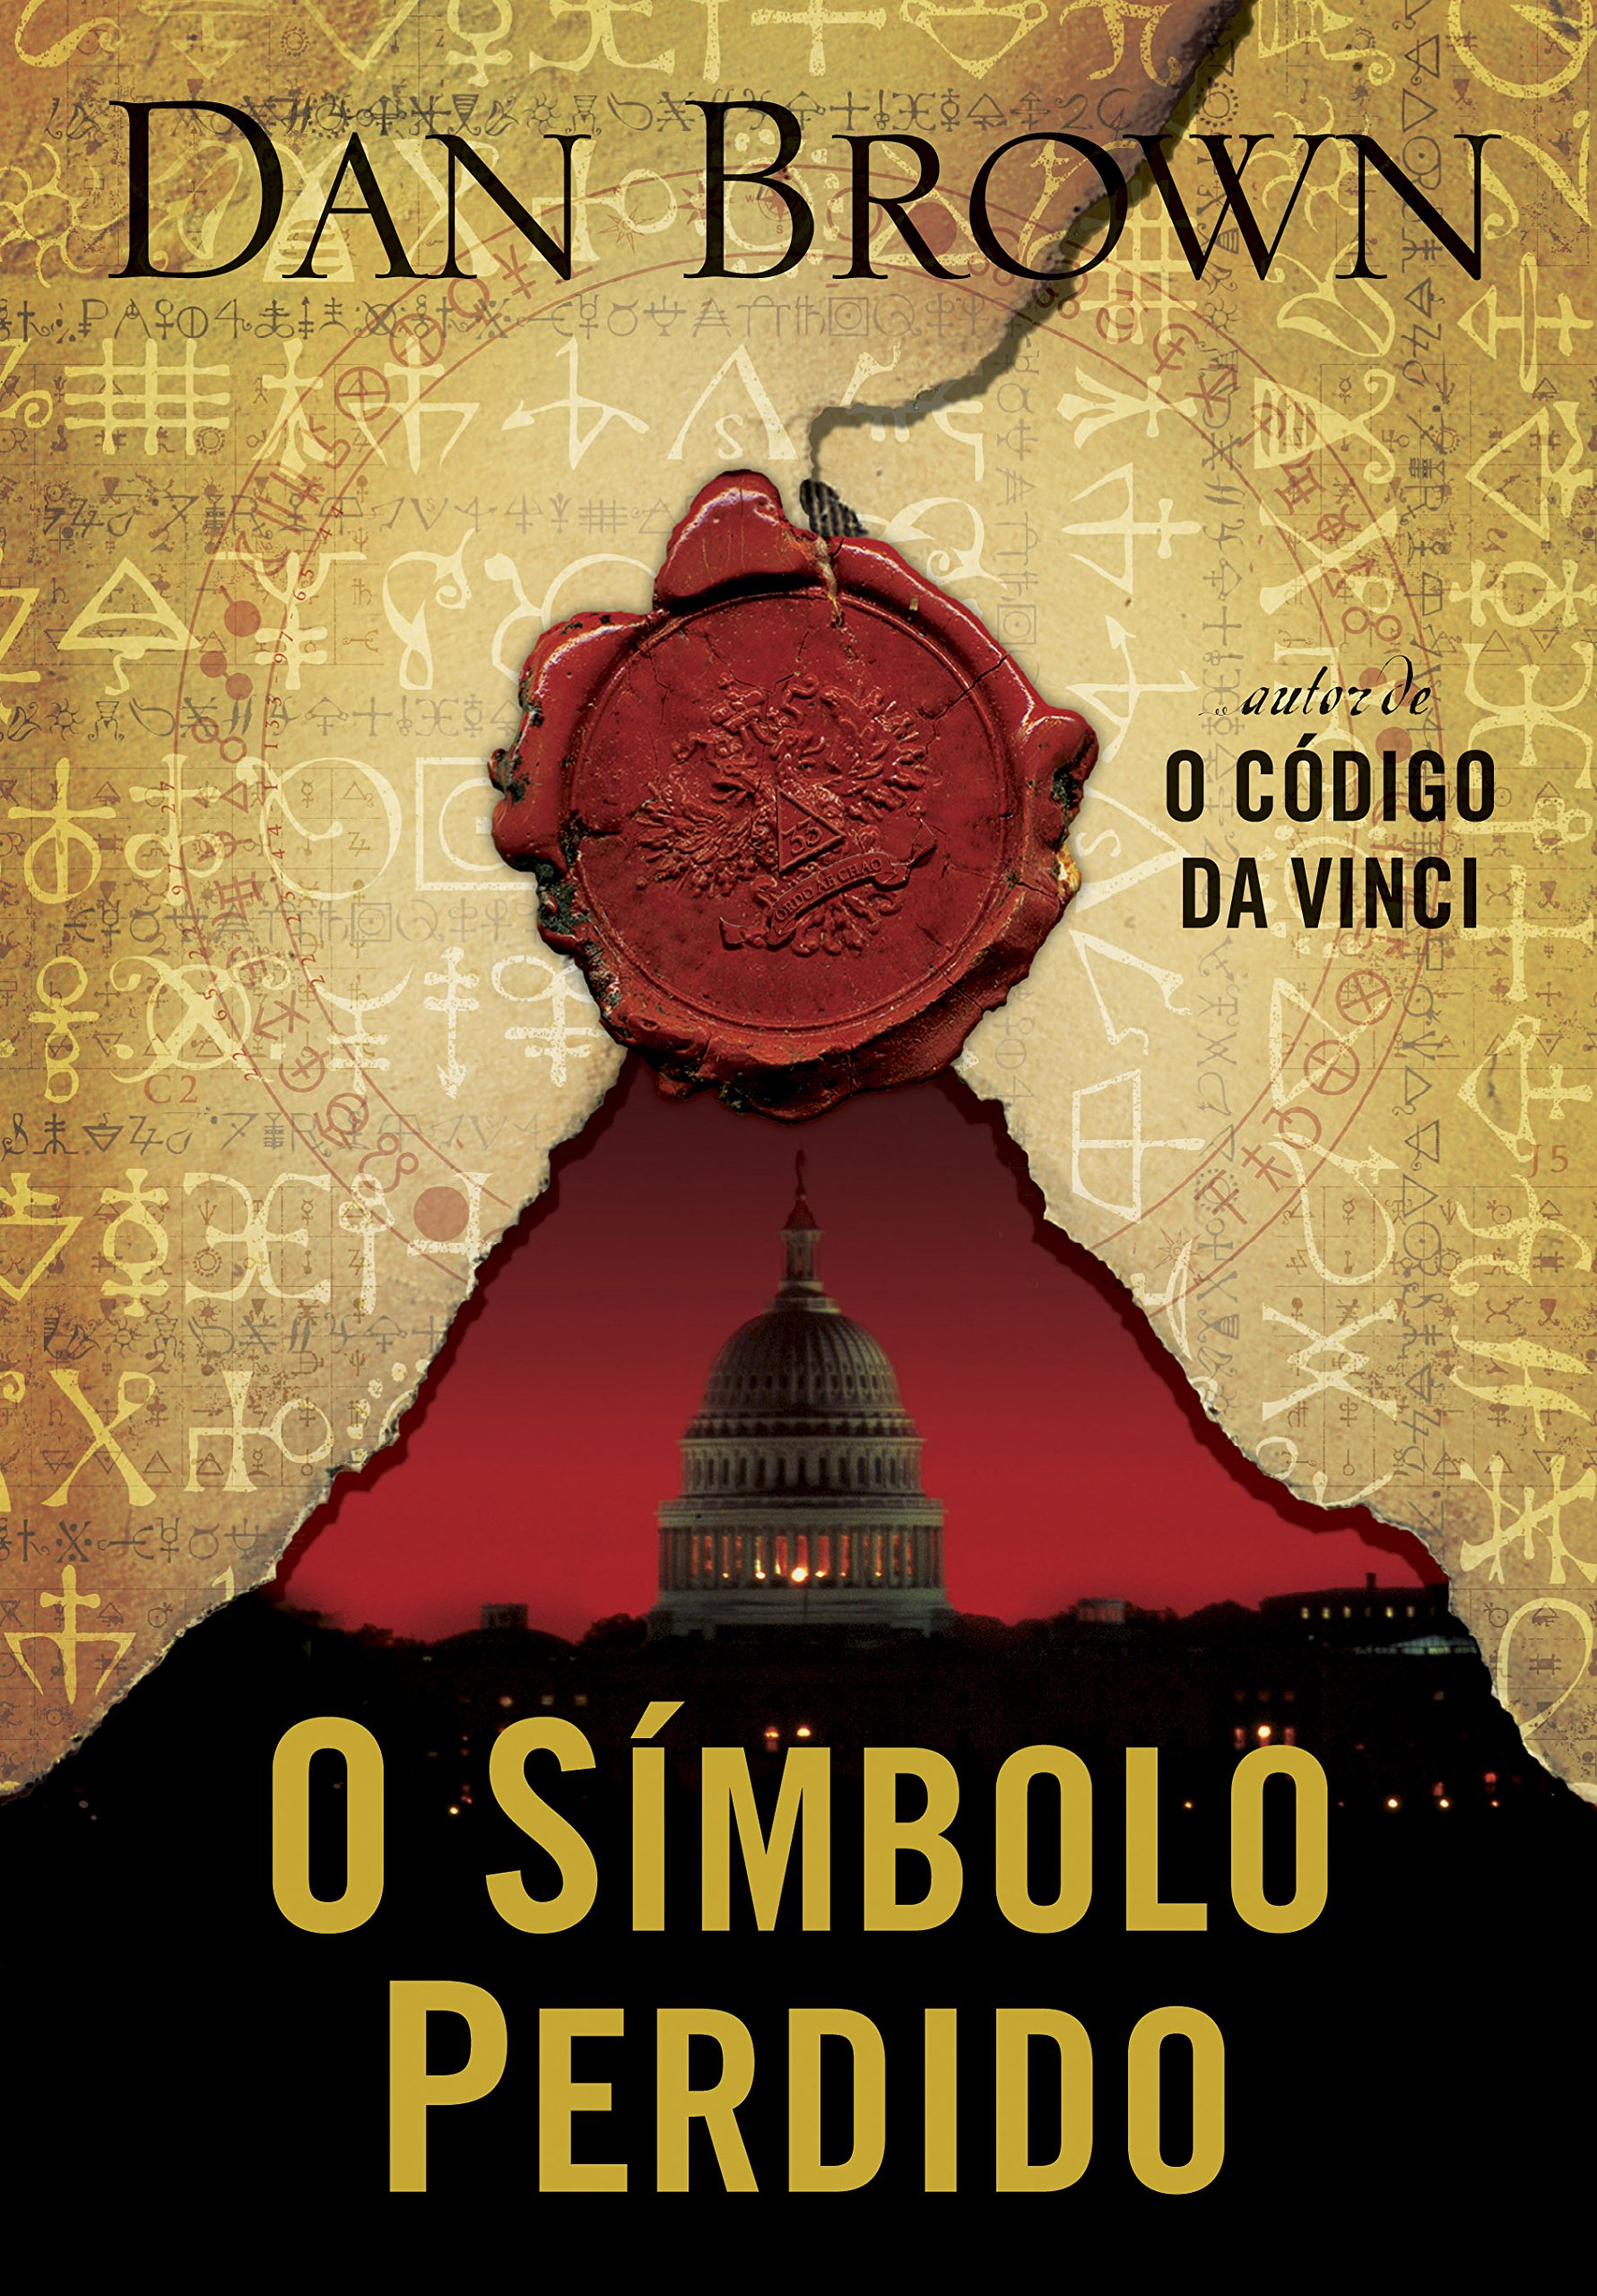 O simbolo perdido the lost symbol portuguese dan brown o simbolo perdido the lost symbol portuguese dan brown 9788599296554 amazon books buycottarizona